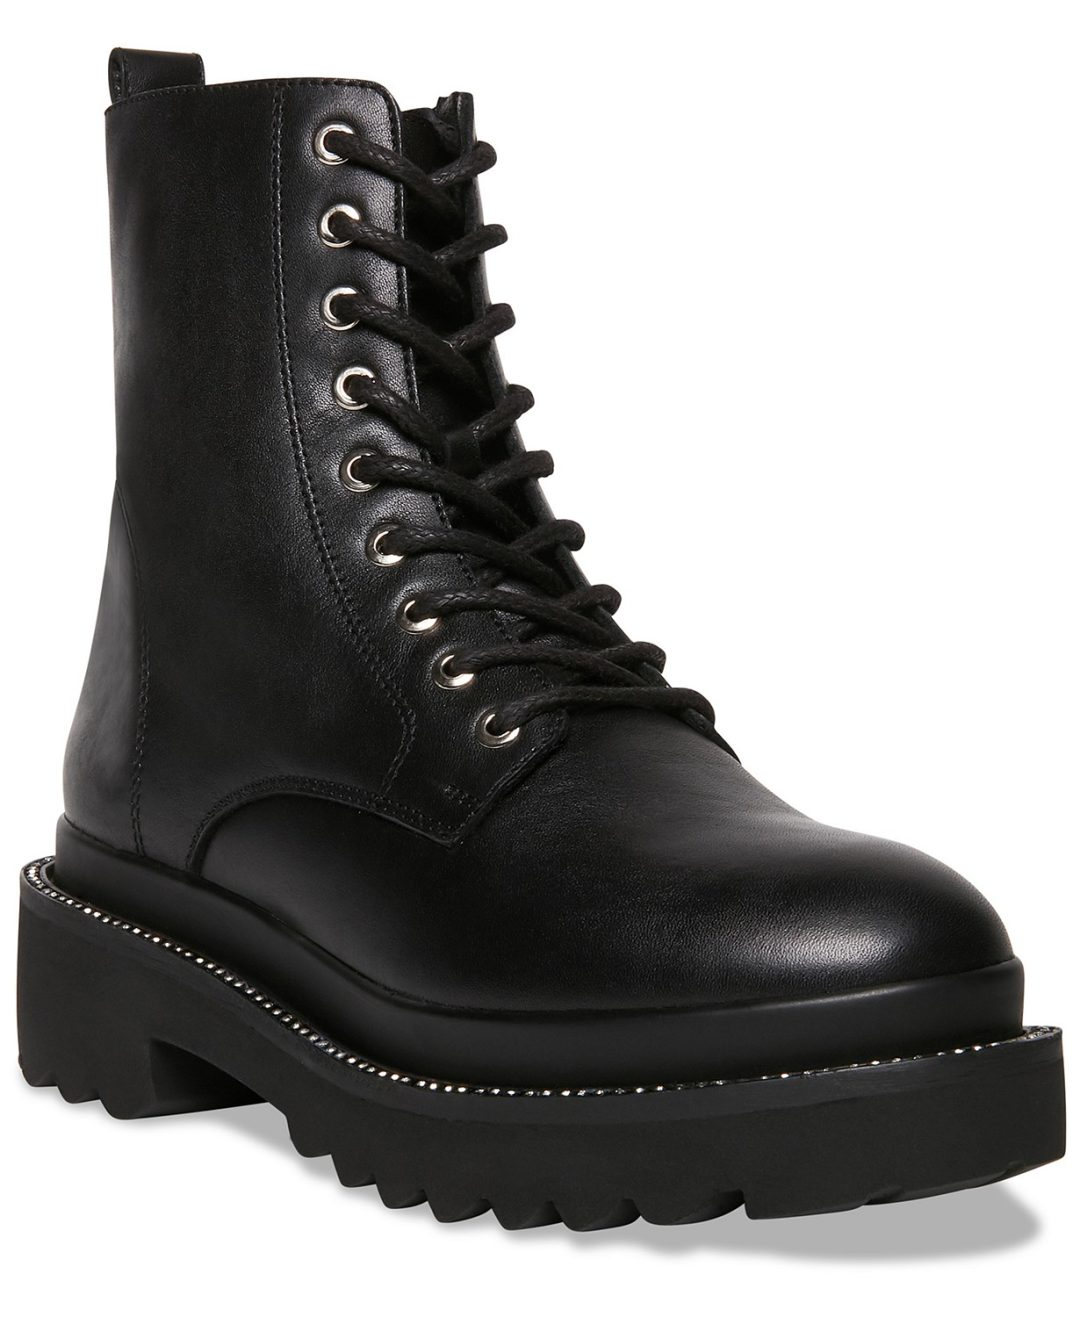 The best black alternatives to Dr. Martens boots